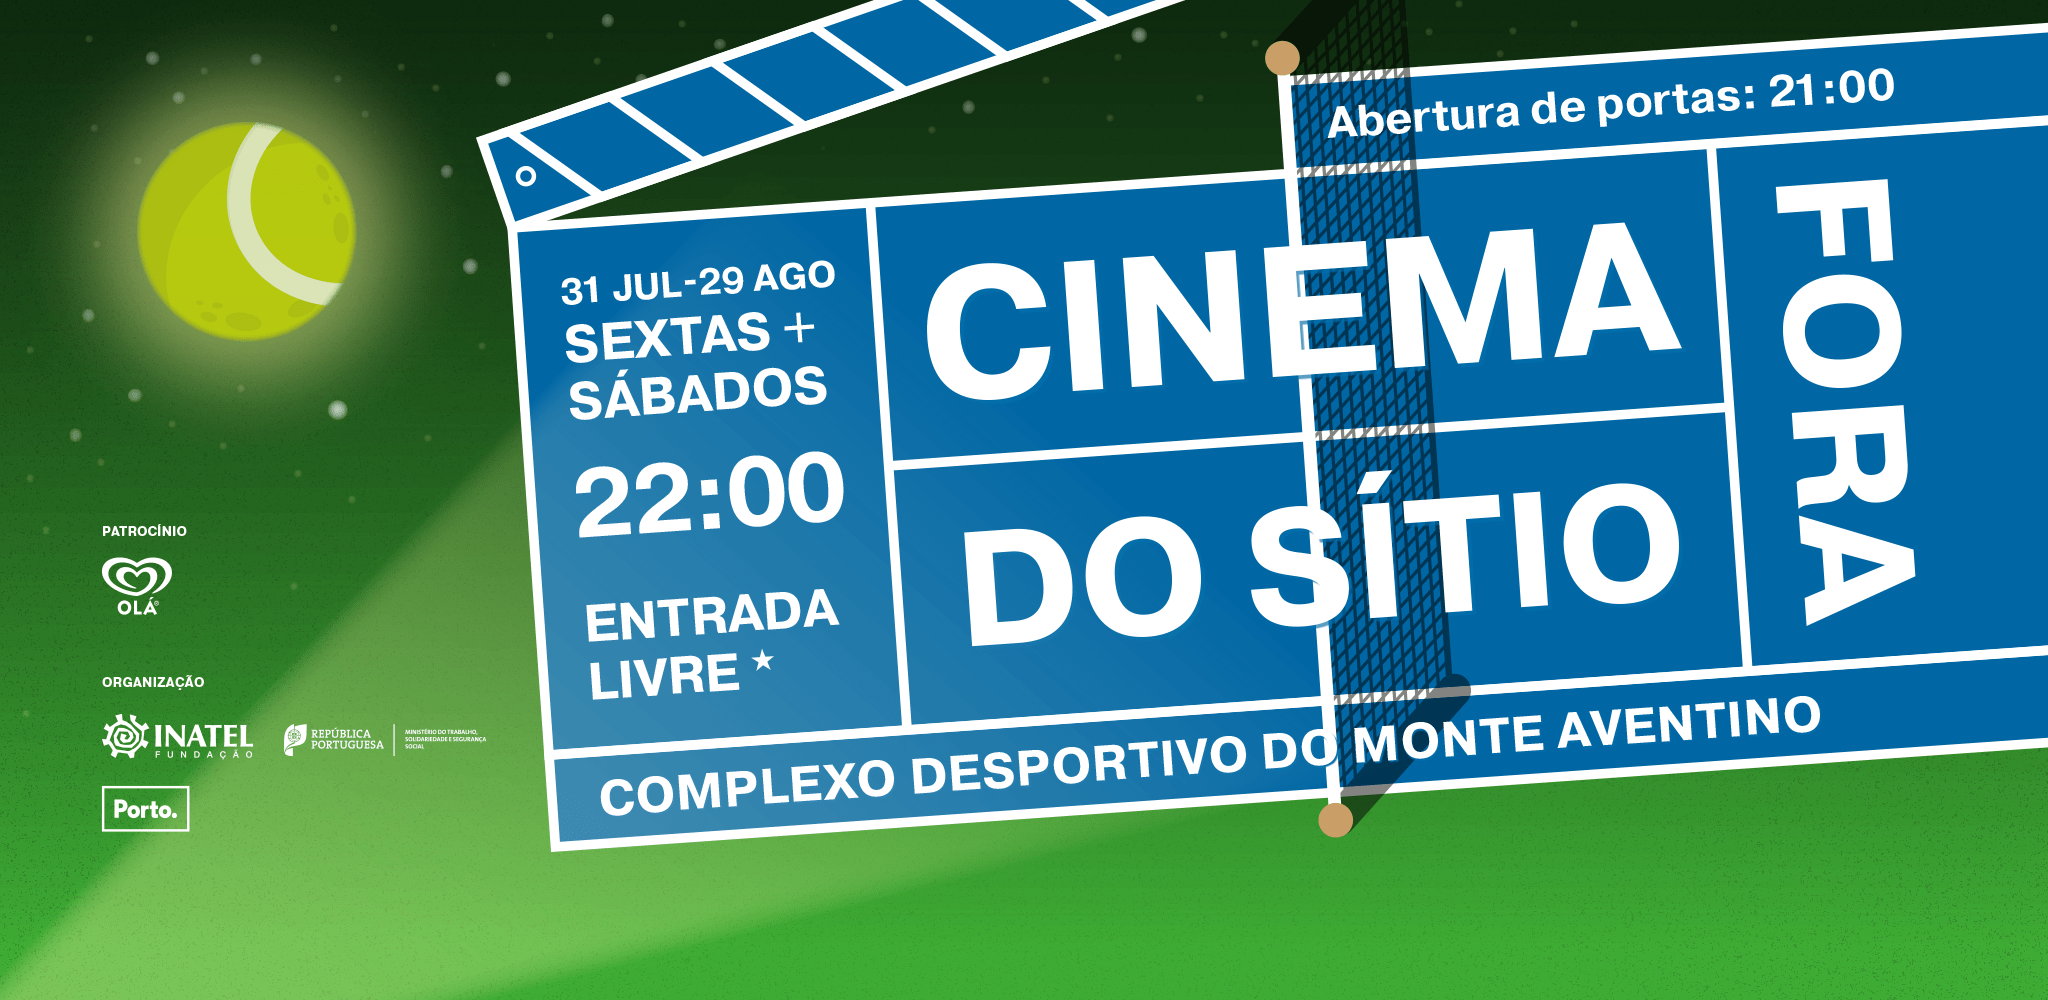 Cinema-Fora-Sitio-Porto-2020